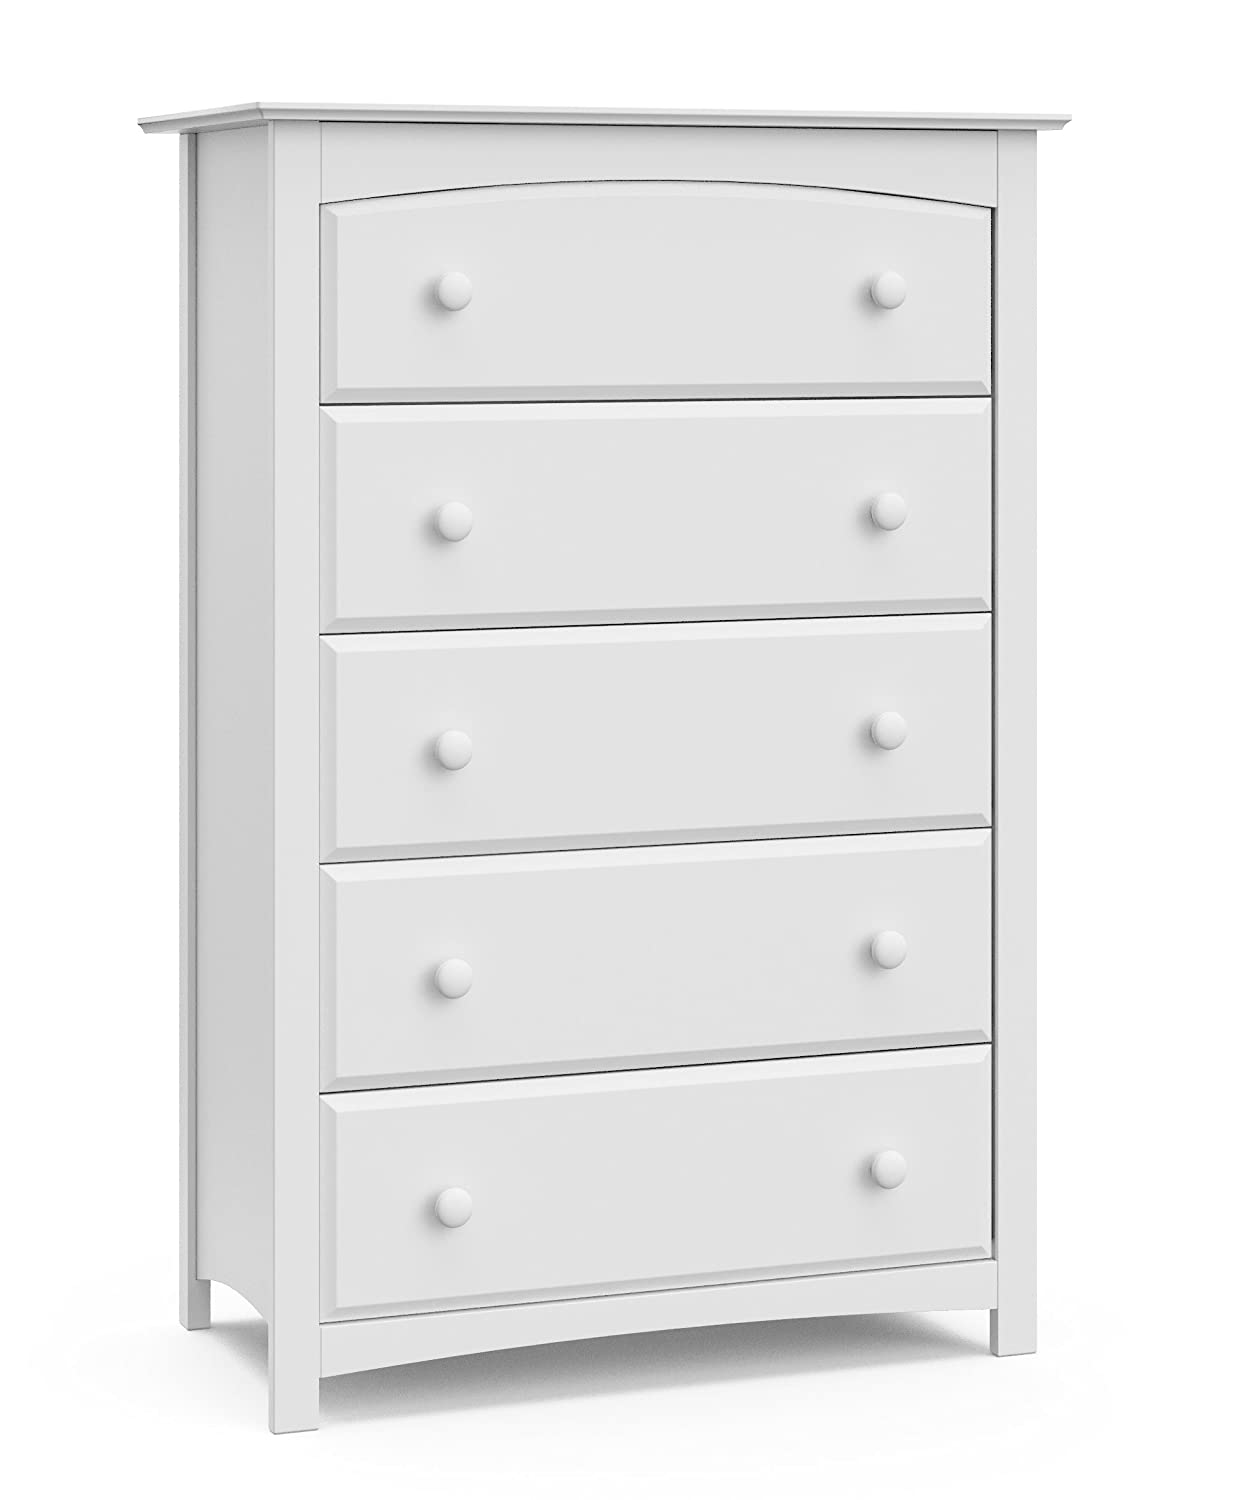 Stork Craft Kenton 5 Drawer Universal Dresser, White